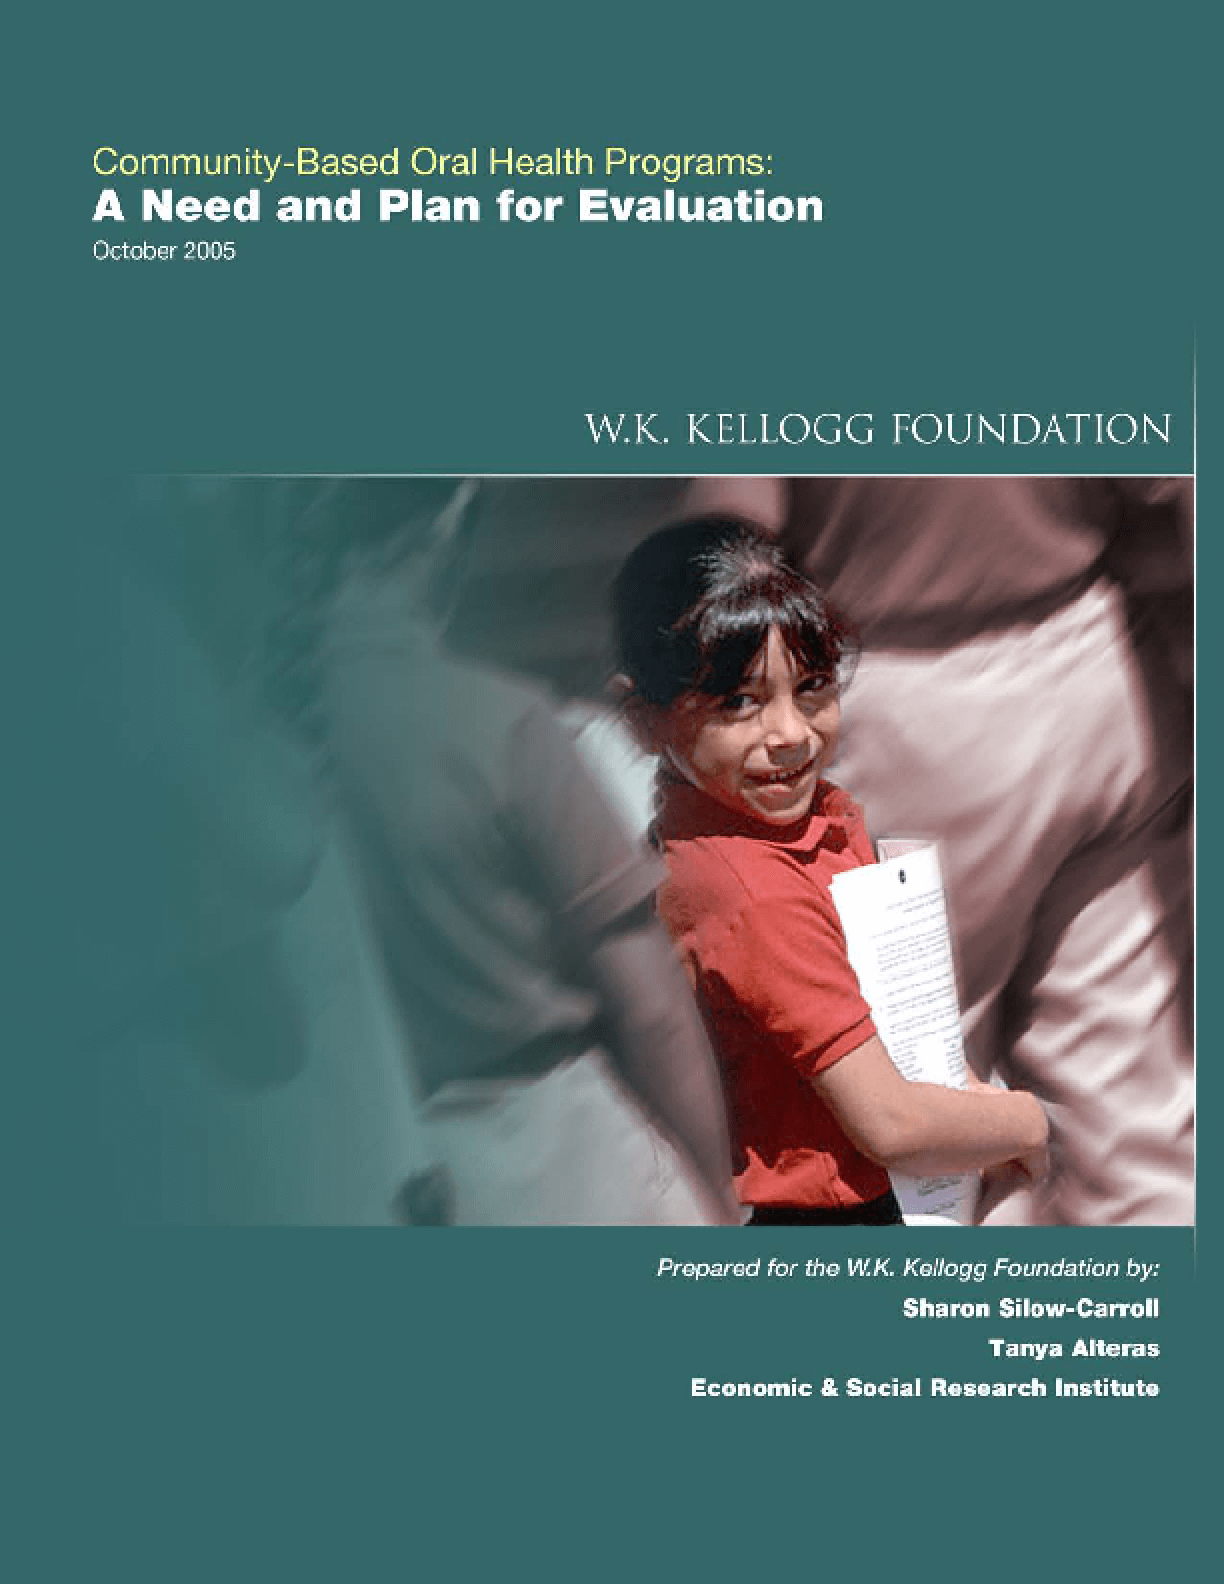 Community-Based Oral Health Programs: A Need and Plan for Evaluation